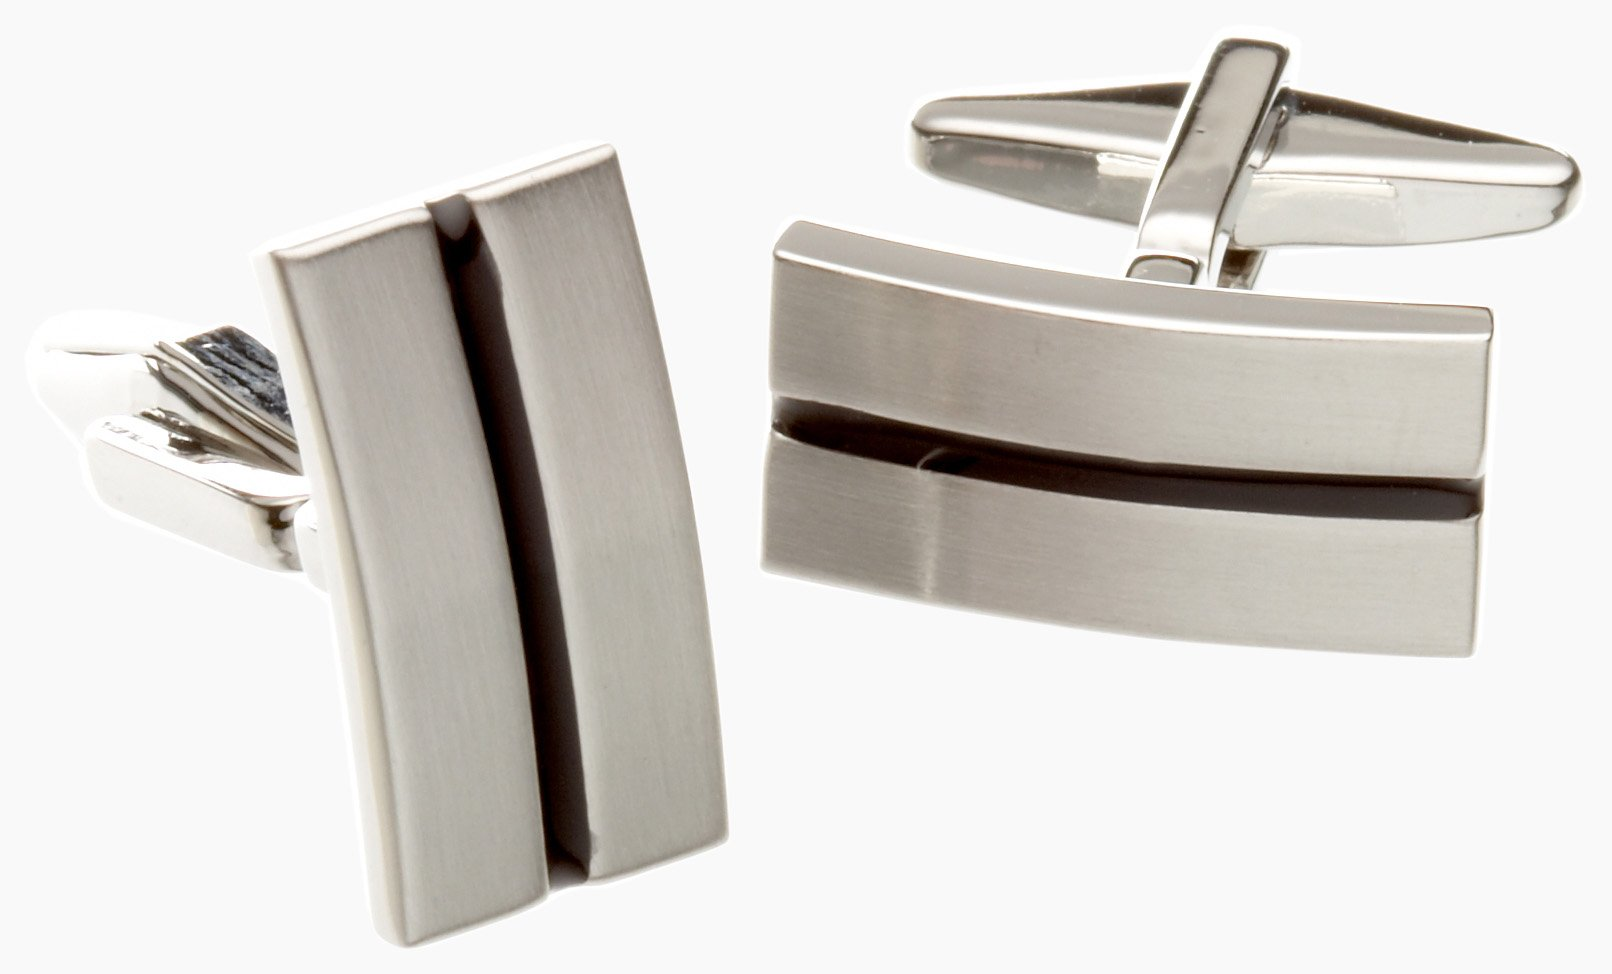 Kenneth Cole REACTION Men's Cufflinks, Silver, One Size